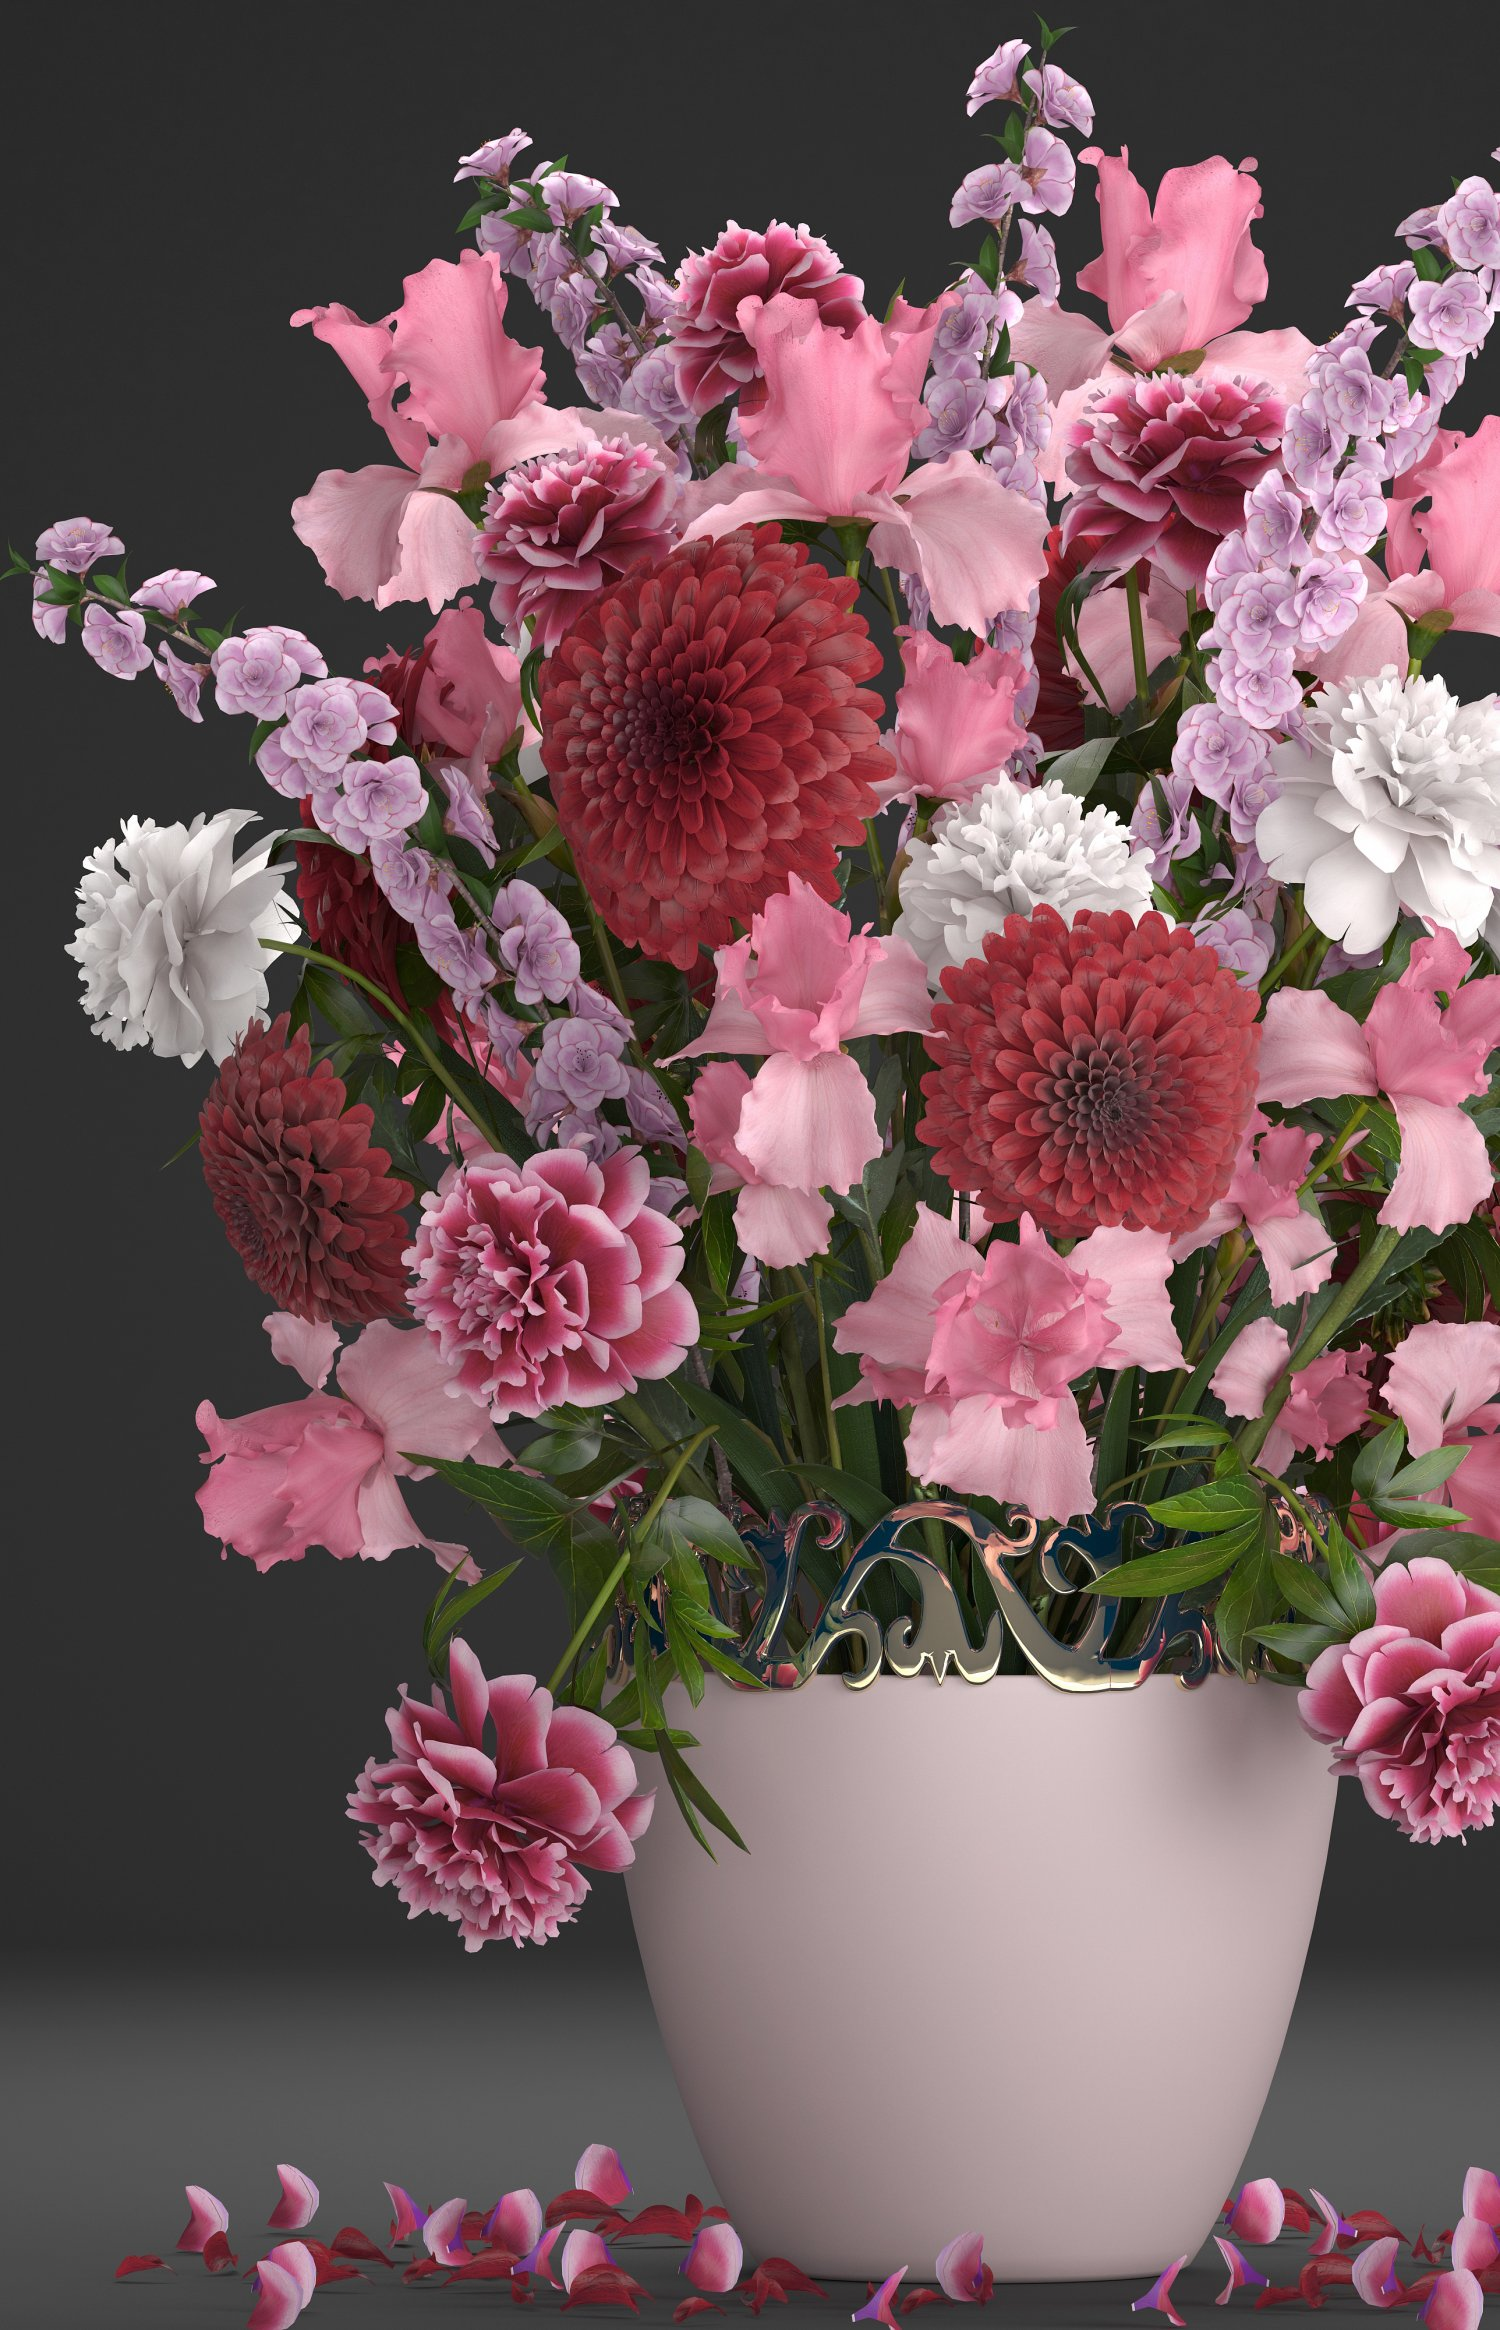 Bouquet of flowers 3d model in flowers 3dexport bouquet of flowers 3d model izmirmasajfo